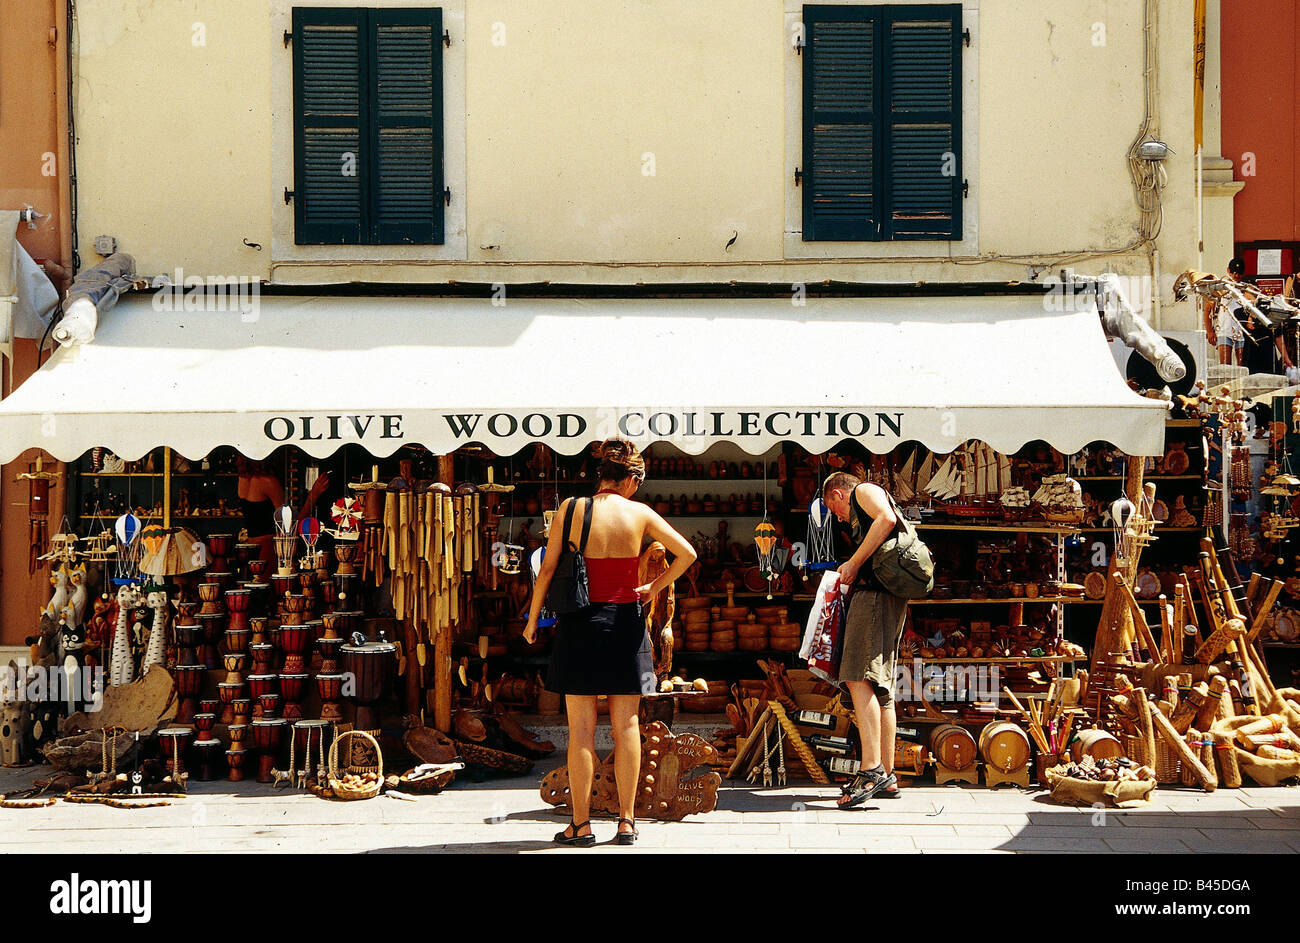 geography / travel, Greece, skilled crafts, shop with manual work made of olive wood, Kerkira, island Corfu, lumber, - Stock Image